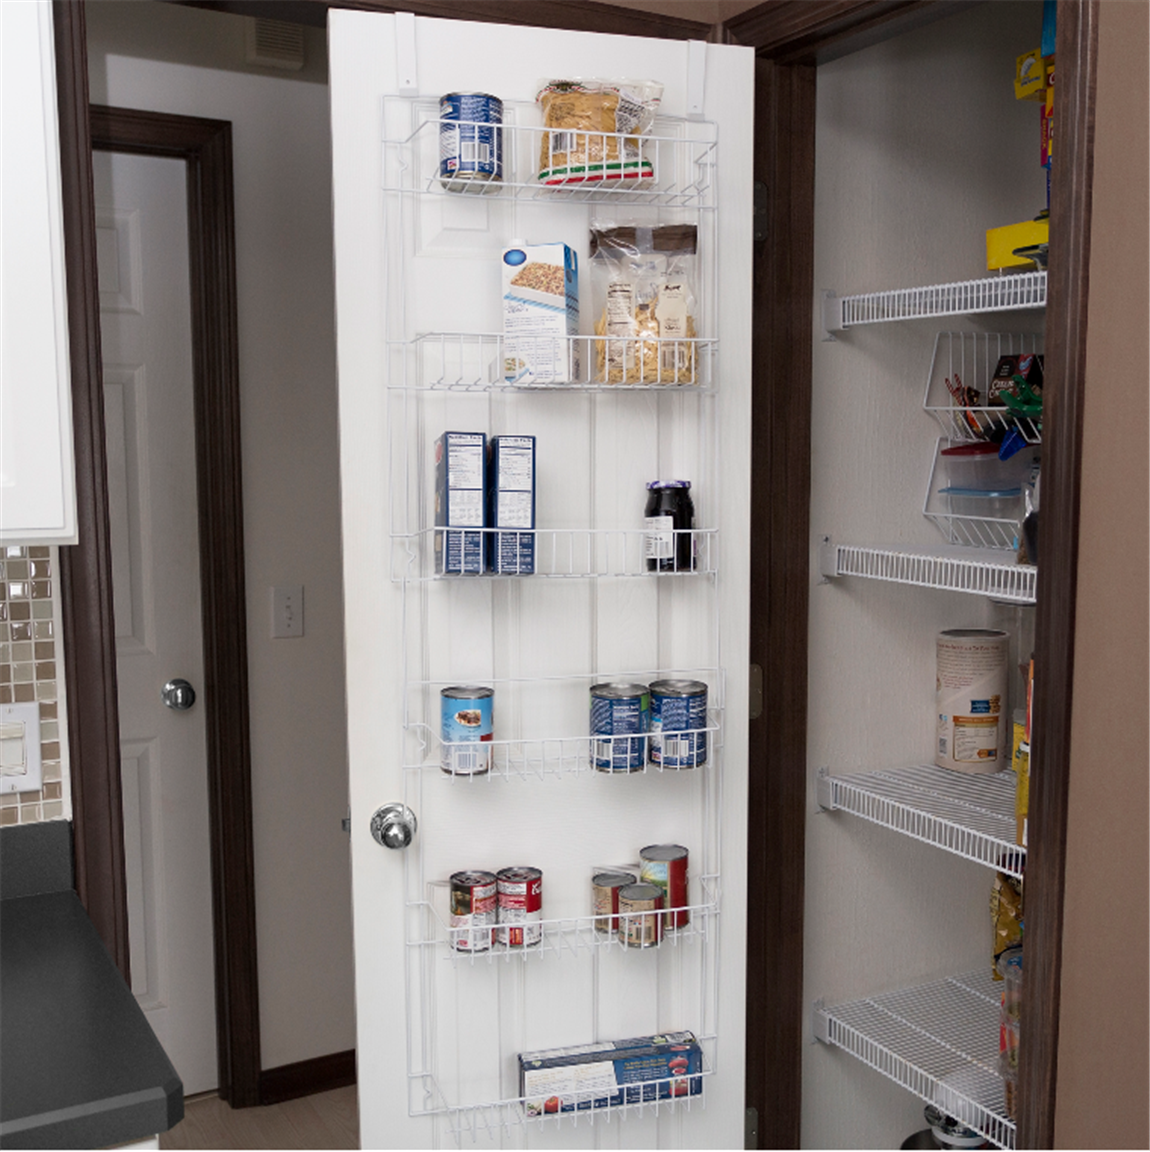 Walmart.com OR Amazon – Lavish Home Over the Door Pantry/Bathroom Organizer w/ 6 Shelves Only $14, Reg $25